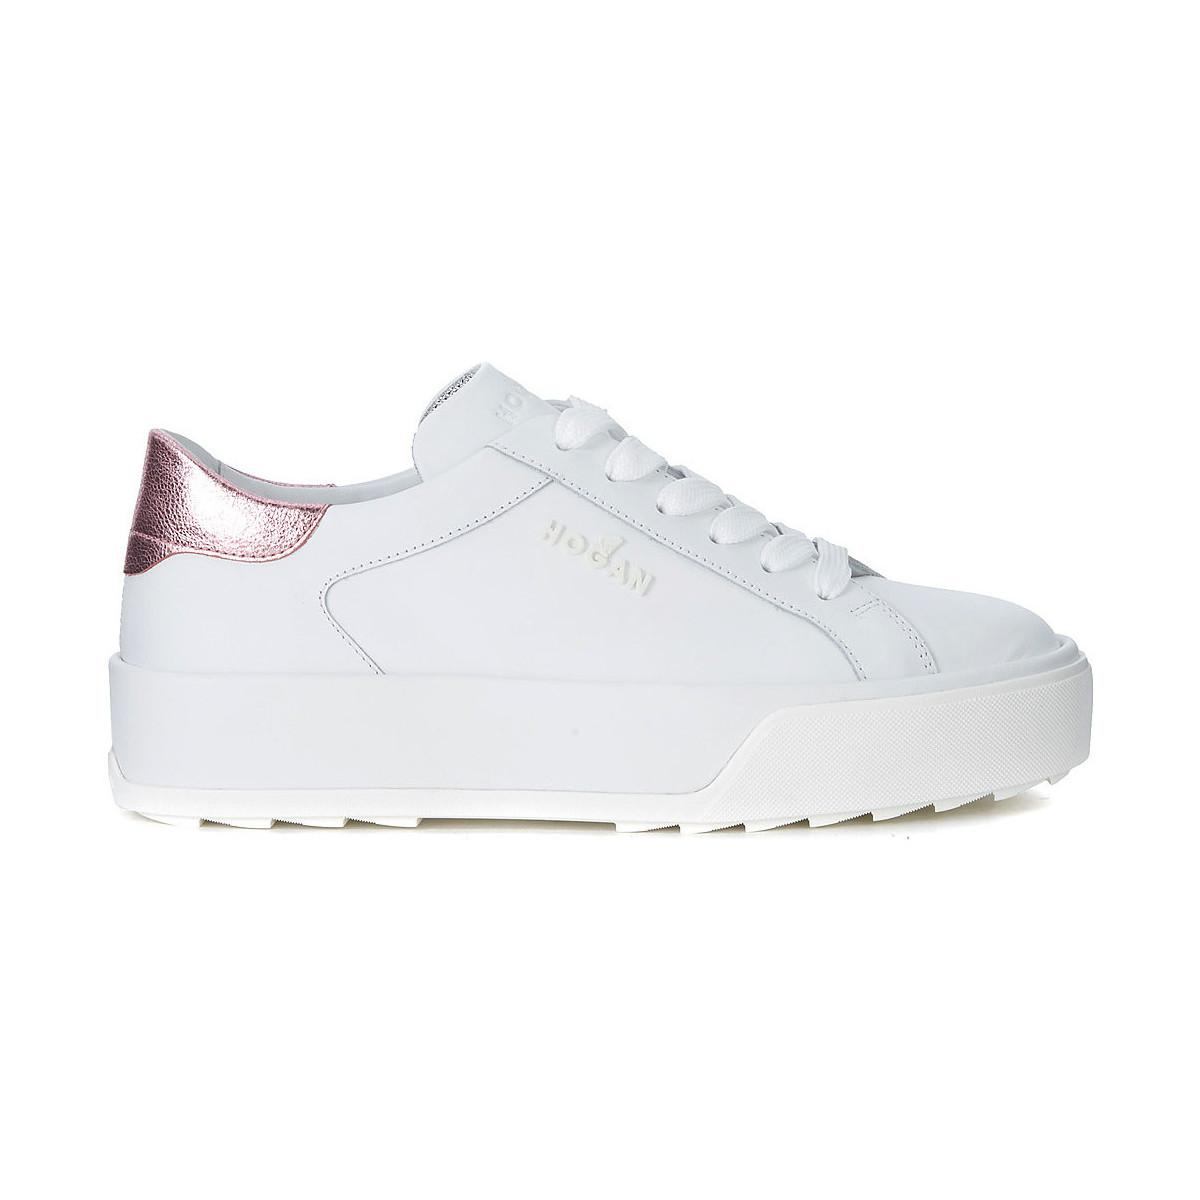 Hogan H320 White Leather And Metal Pink Snaker The Cheapest Clearance Genuine Sale Online Cheap Outlet Looking For qMuRw8hFA